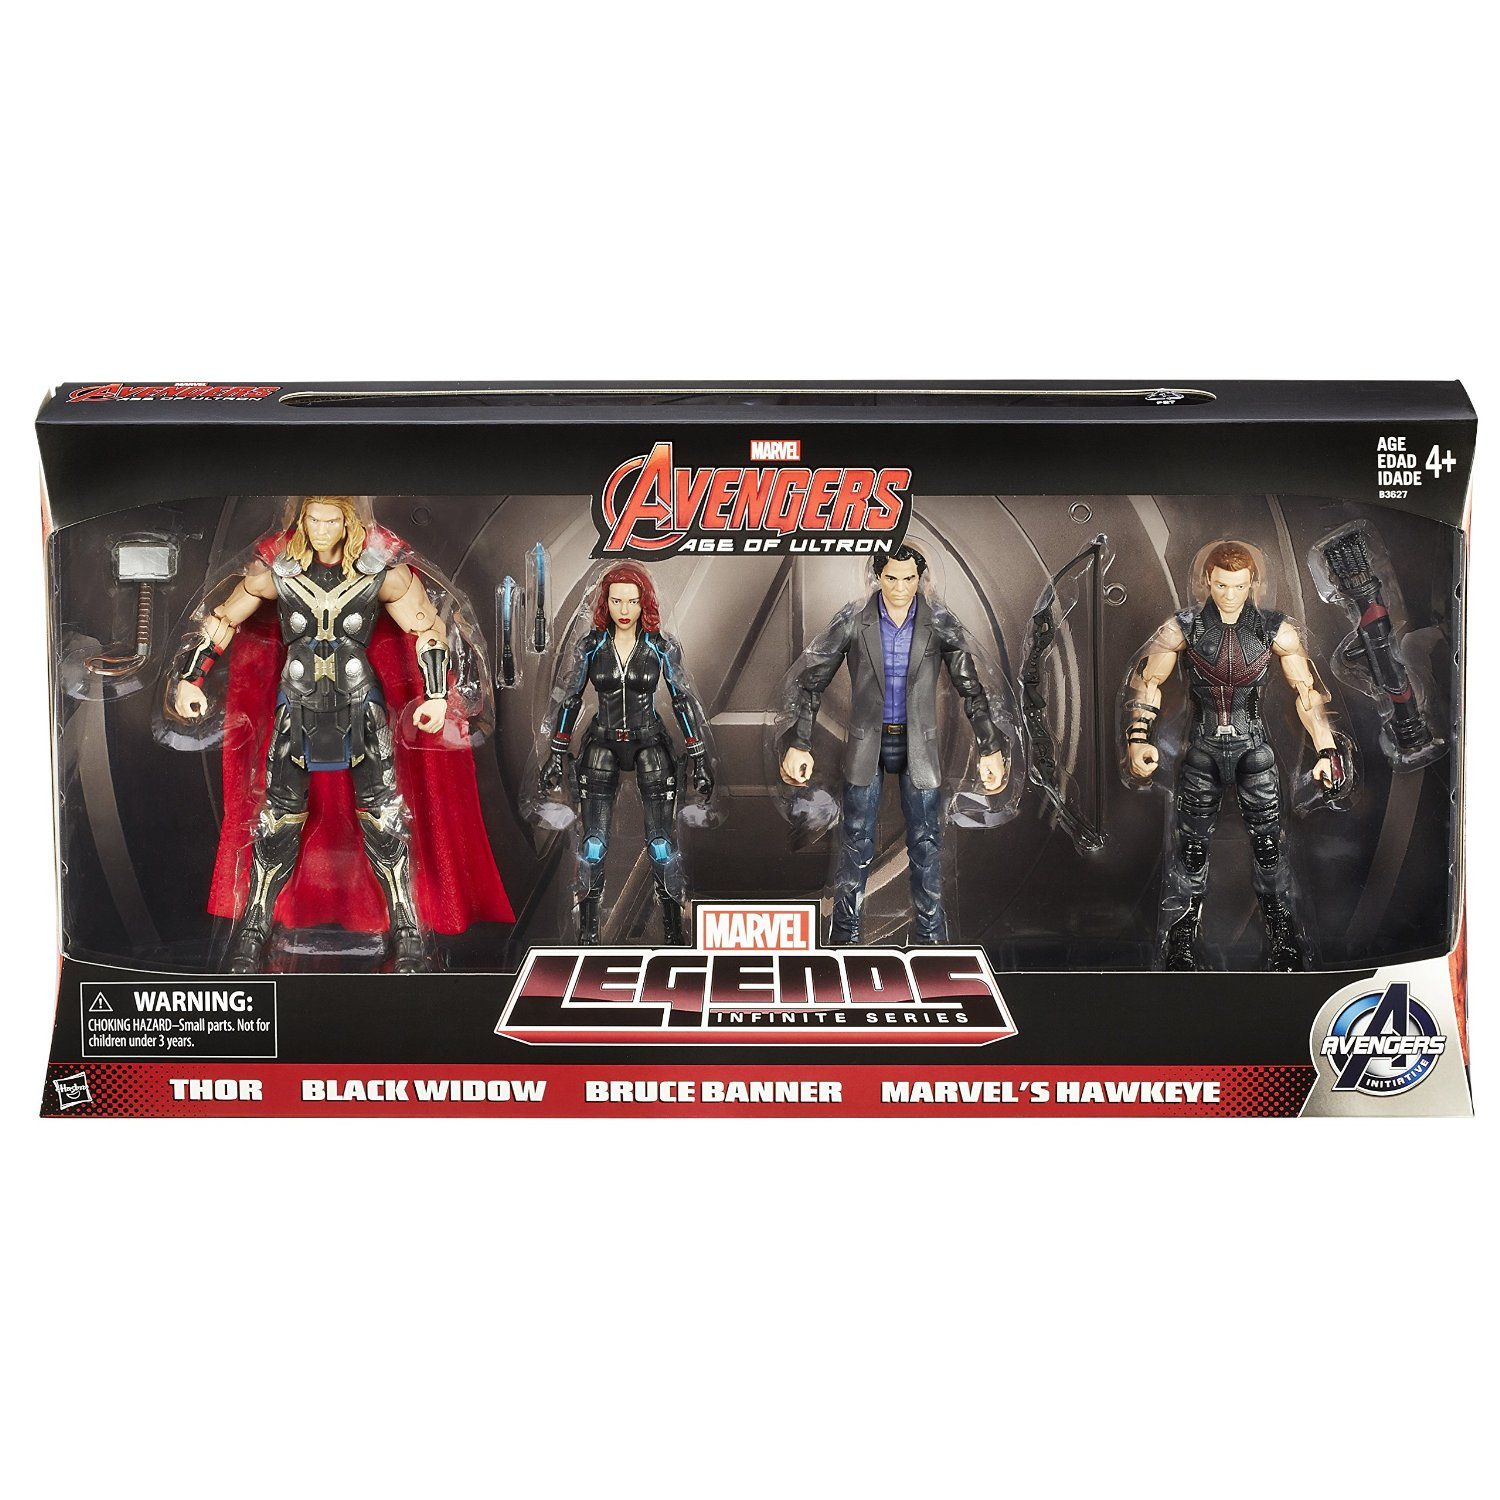 Amazon Exclusive Hasbro Marvel Legends Avengers: Age Of Ultron 4 Pack In Stock